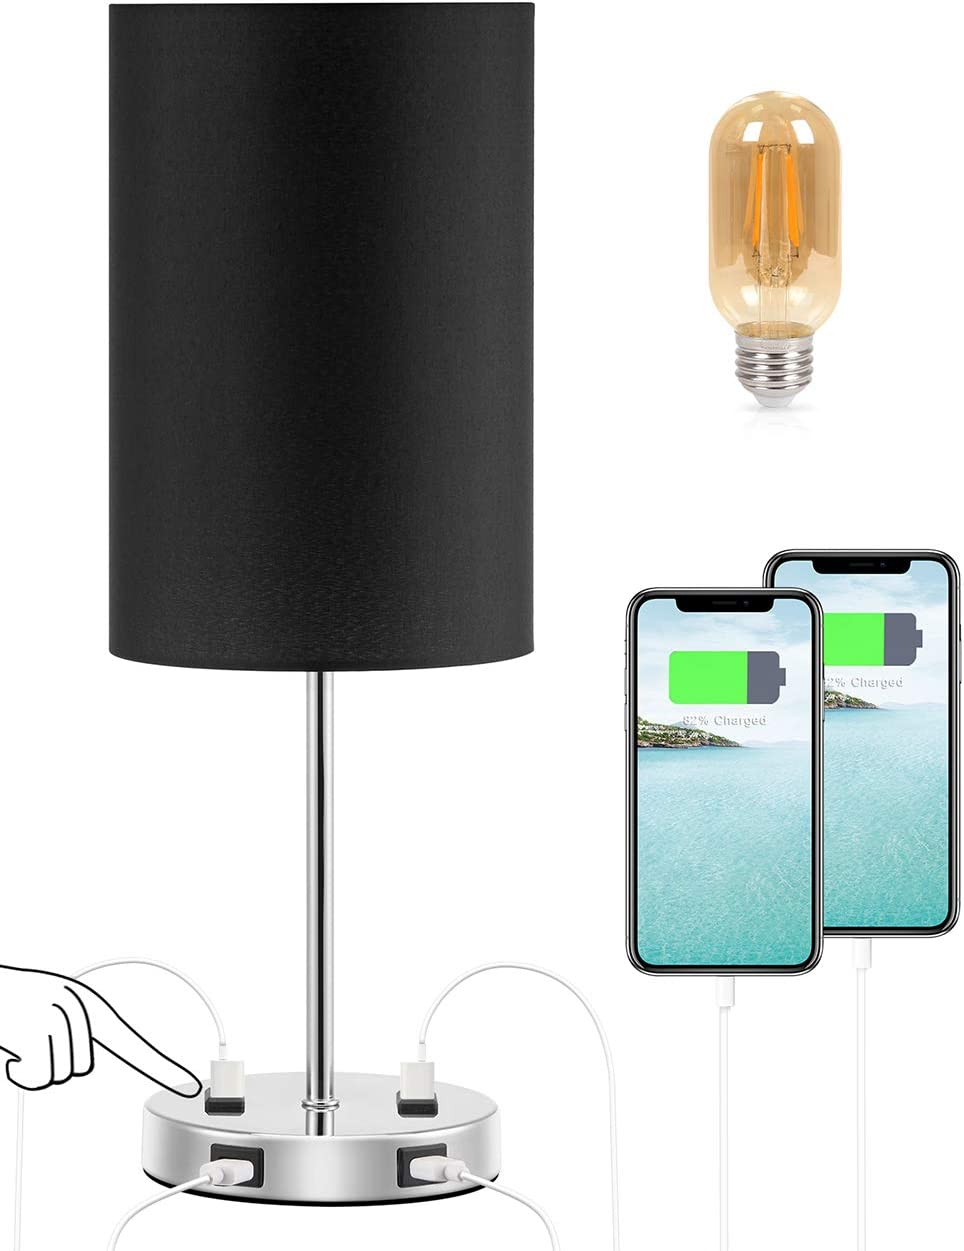 3-Way Dimmable /& 2 USB Charging Ports /& 2 -Pins Outlets for Phones and laptops Acaxin Small End Nighstand Lamps for Bedroom//livingroom Touch Control Bedside Table Desk Lamp LED Bulb Included